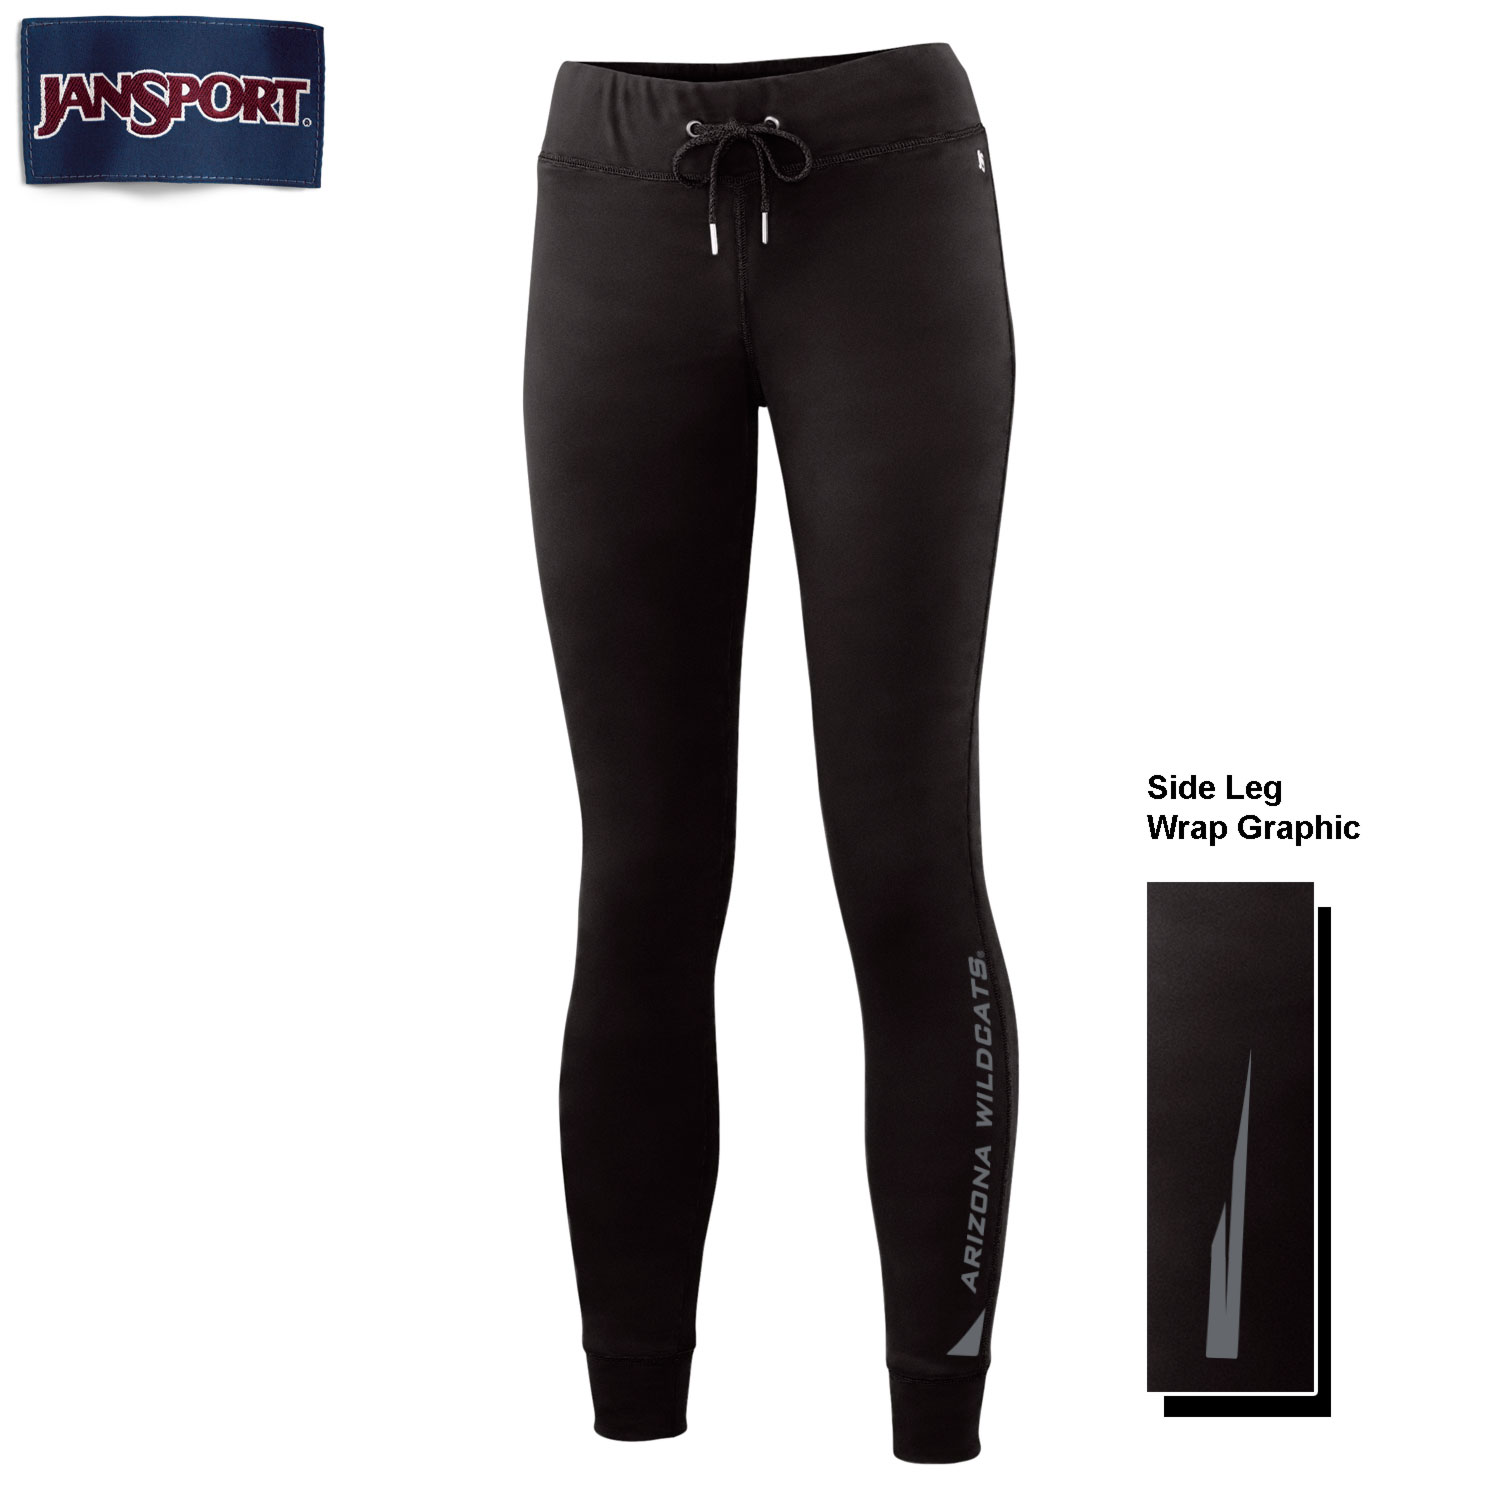 JanSport: Arizona Wildcats Lax Leggings Black